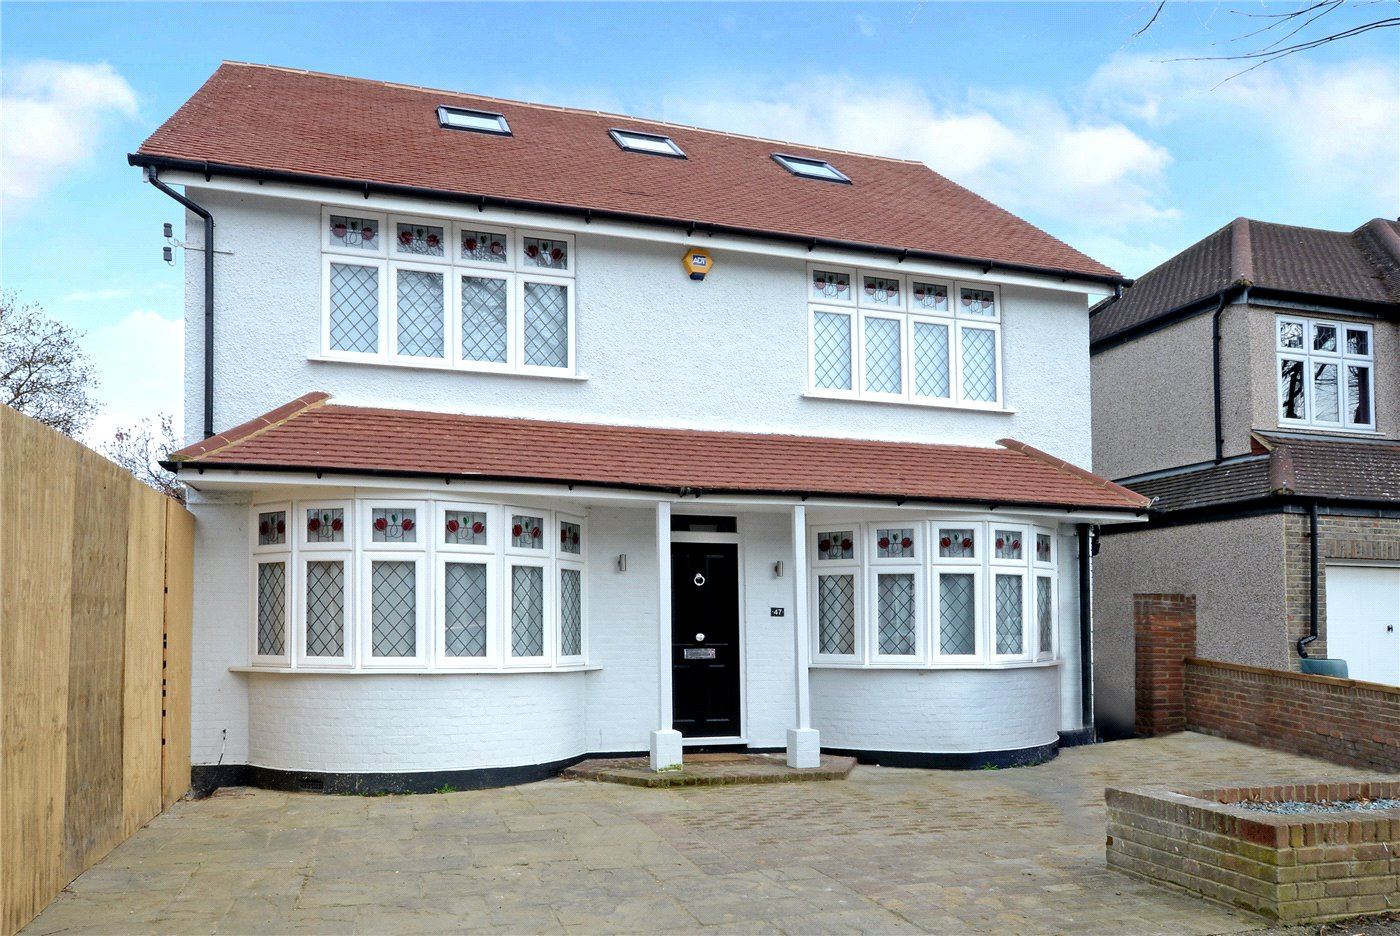 4 Bedrooms Detached House for sale in Lynwood Drive, Worcester Park, KT4